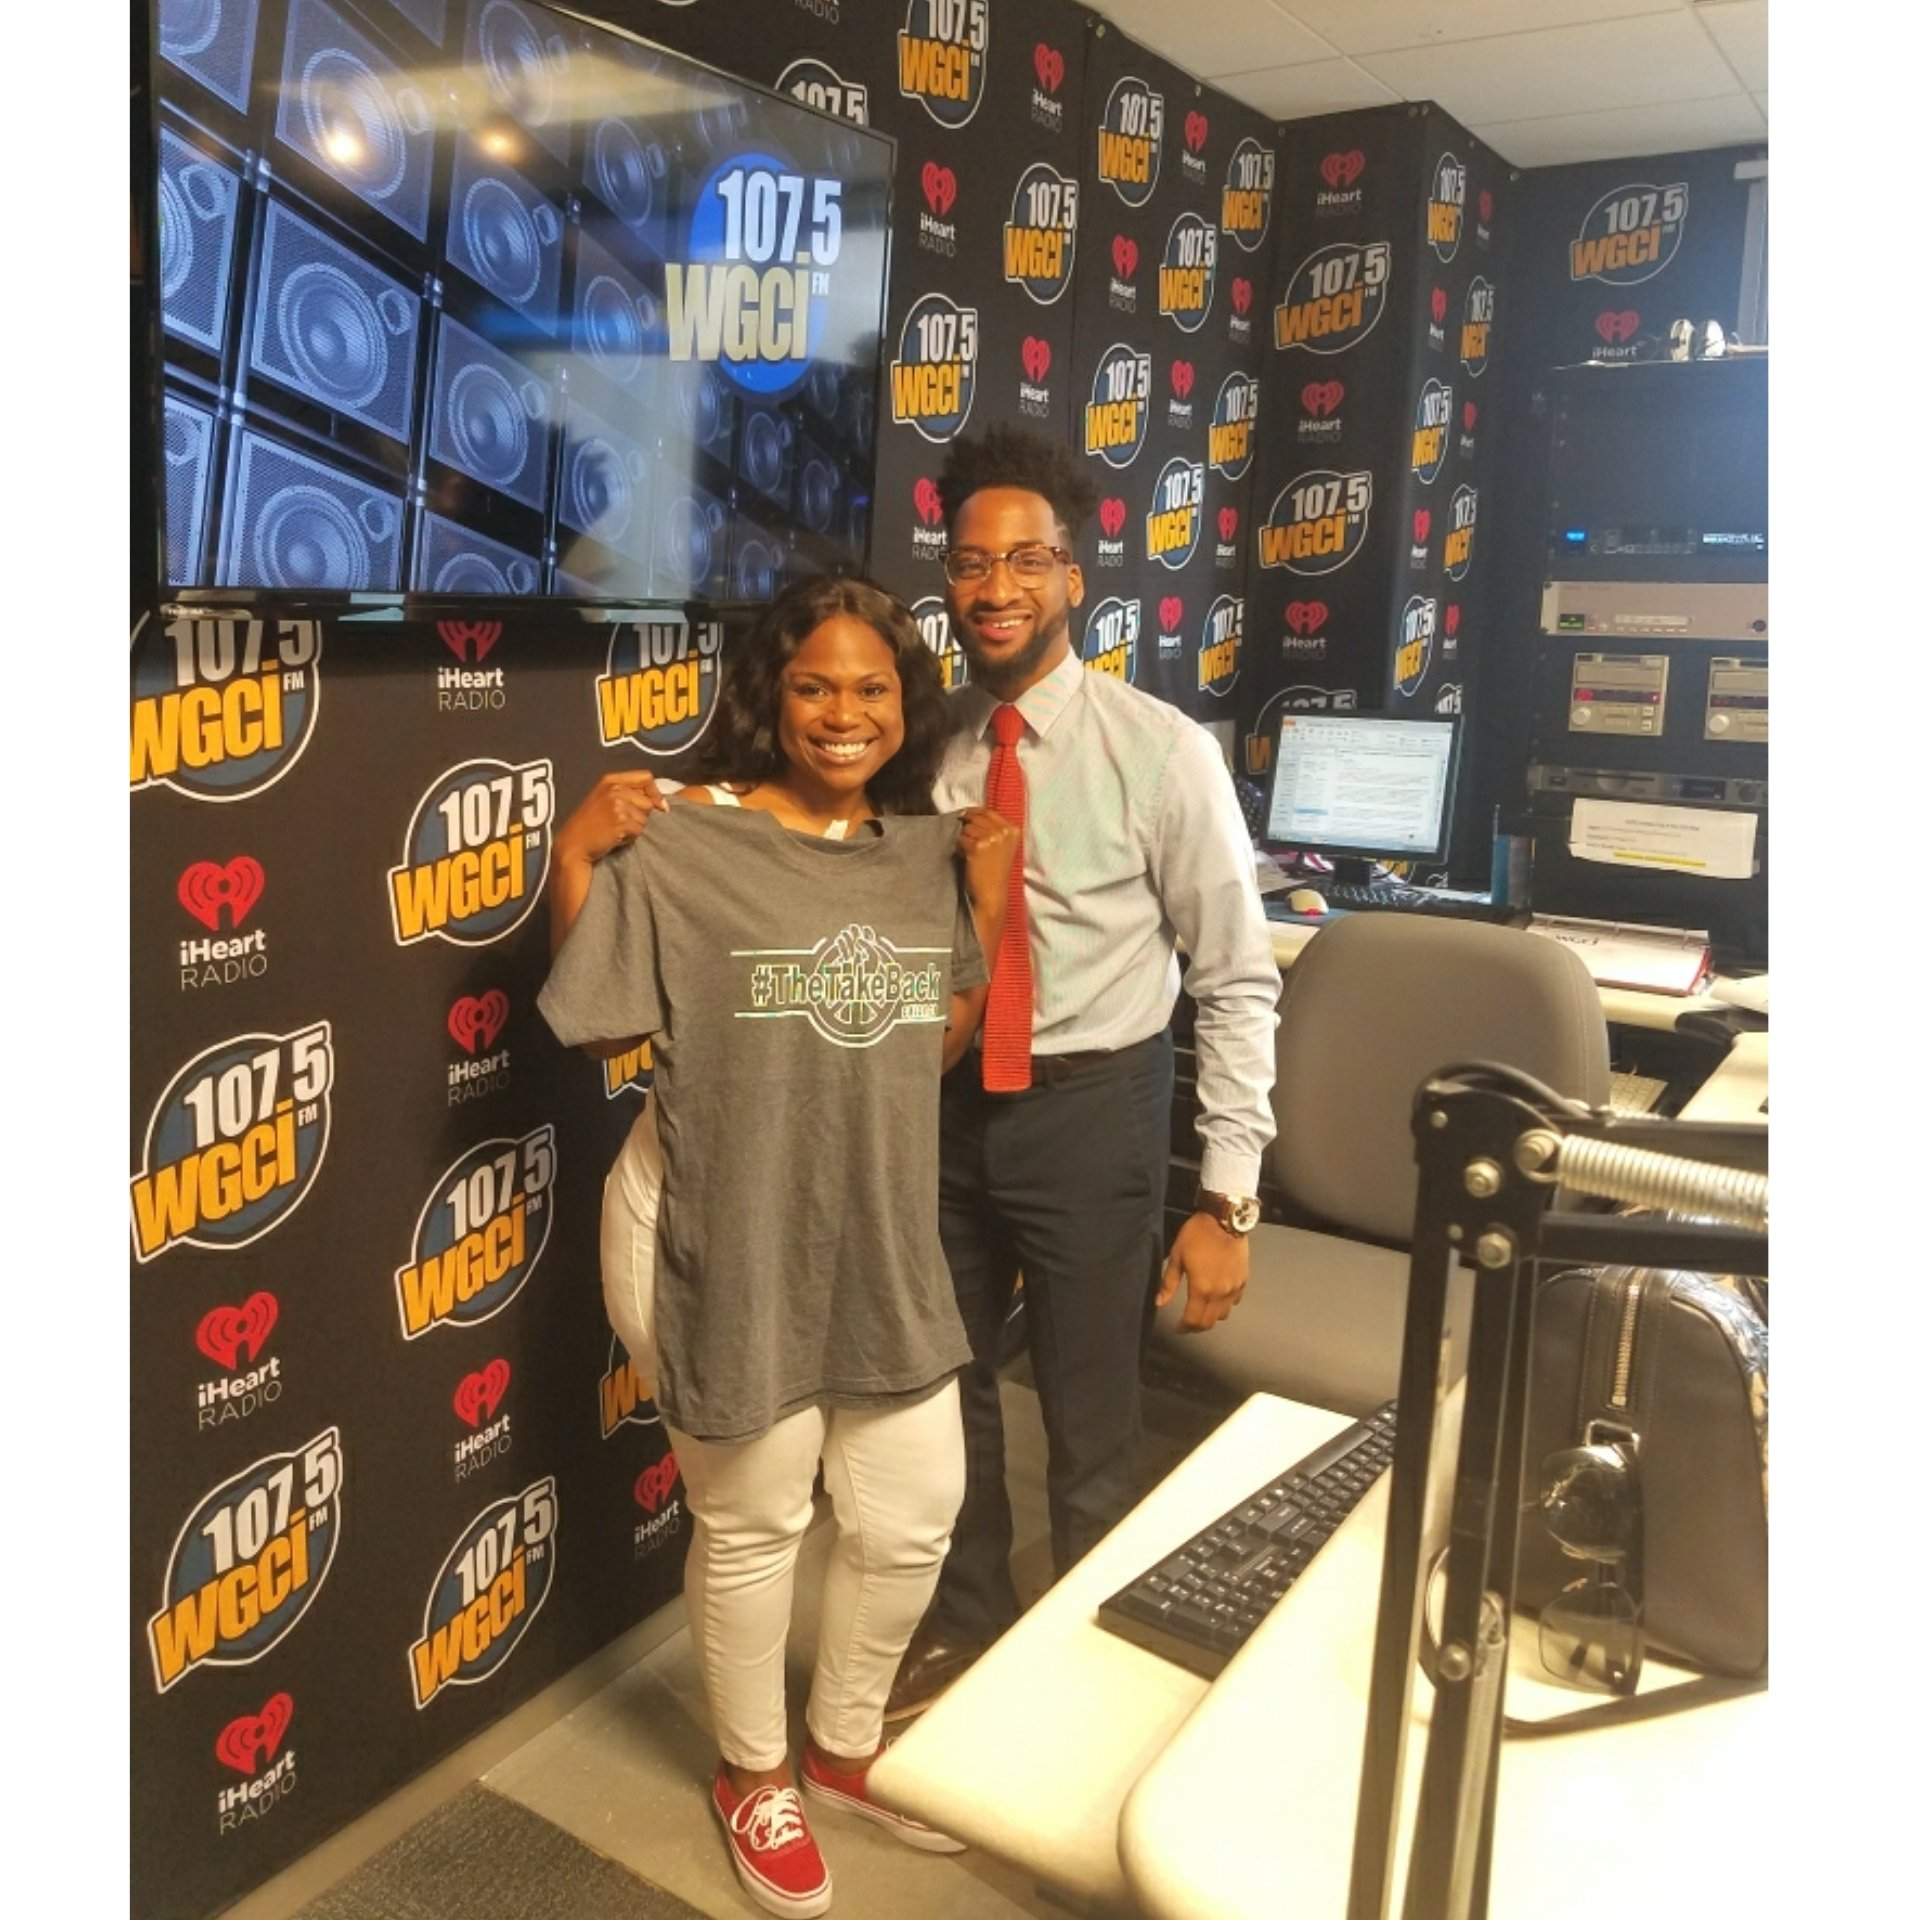 107.5 WGCI Radio Interview